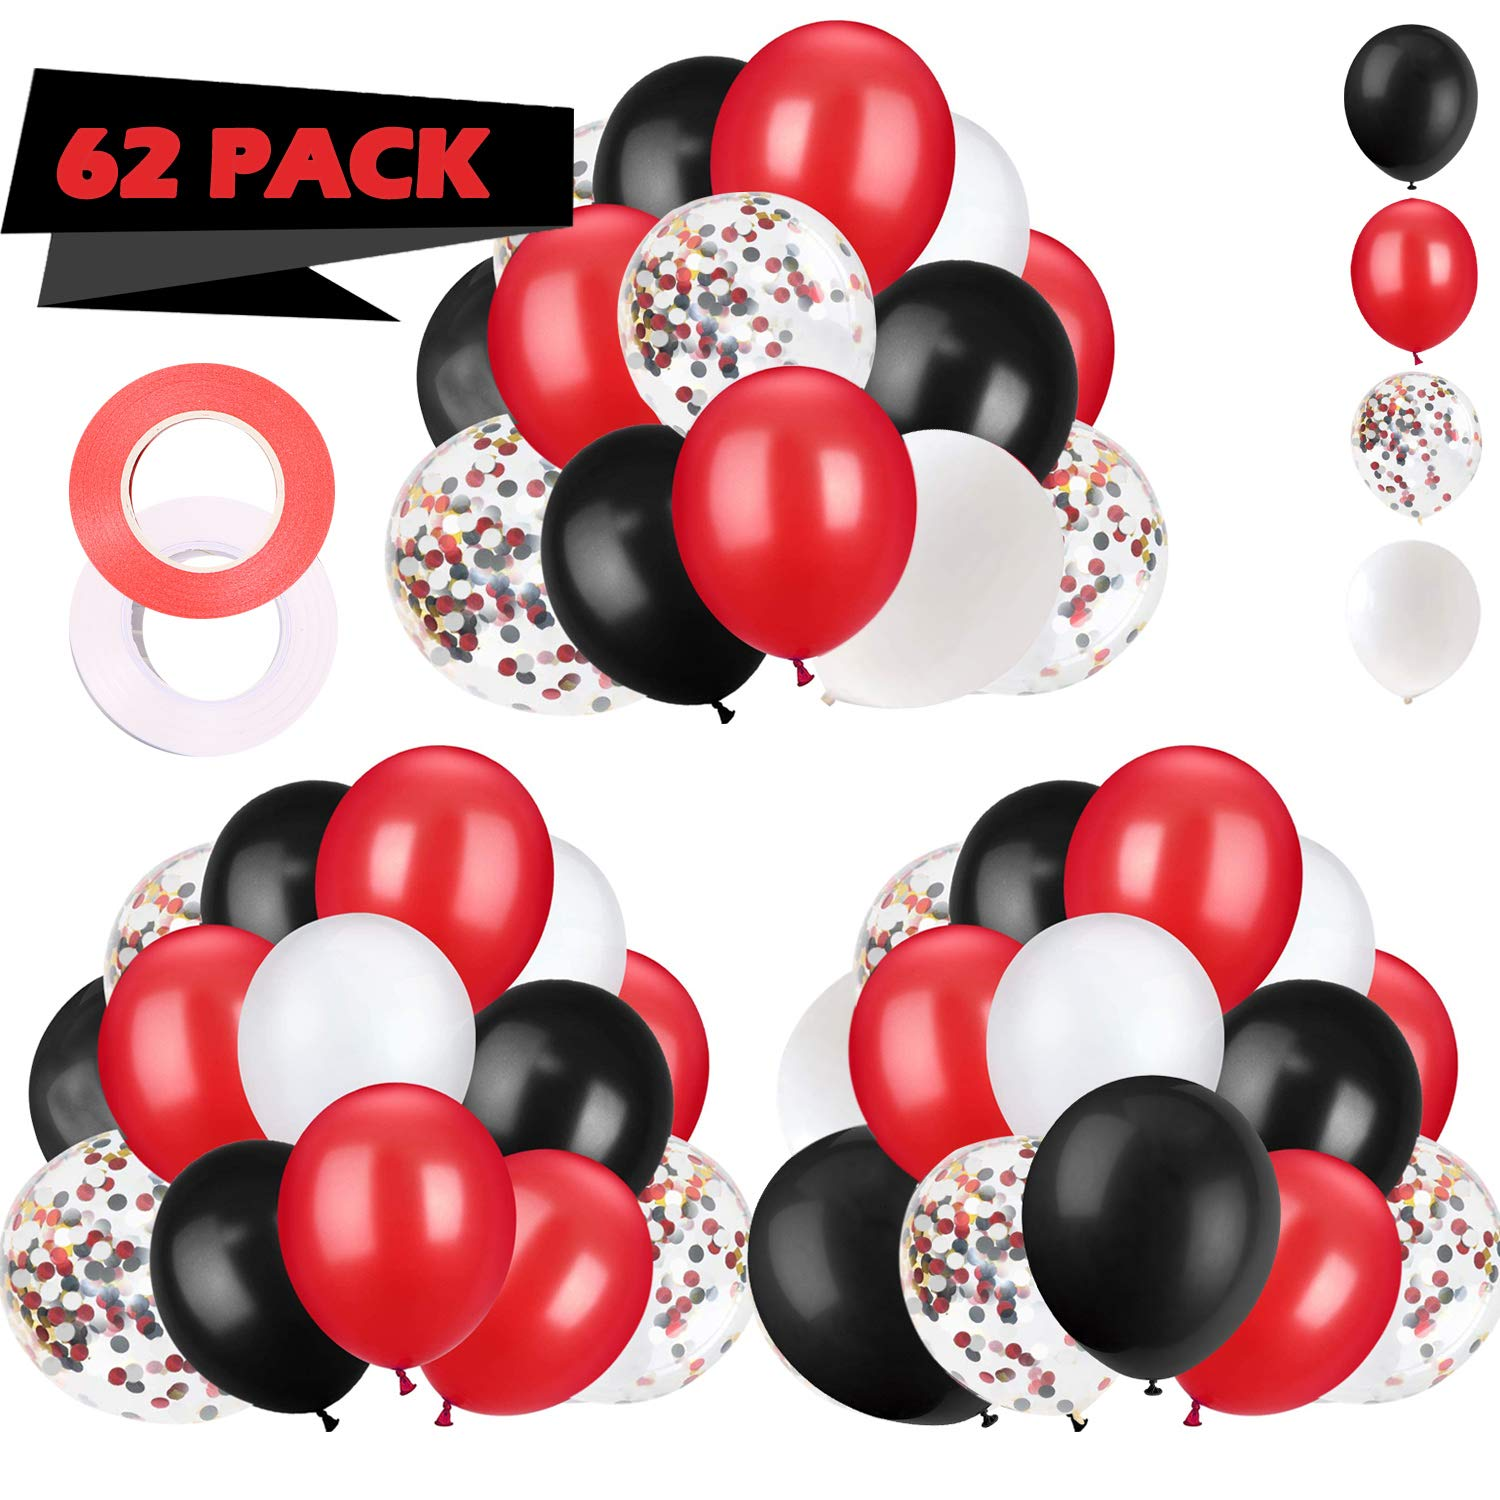 62 Pieces Black Red Confetti Balloons Kit 12 Inches White With Balloon Ribbon For Baby Shower Birthday Quinceanera Graduation Party Decorations Supplies Buy Online In Dominica At Desertcart Com